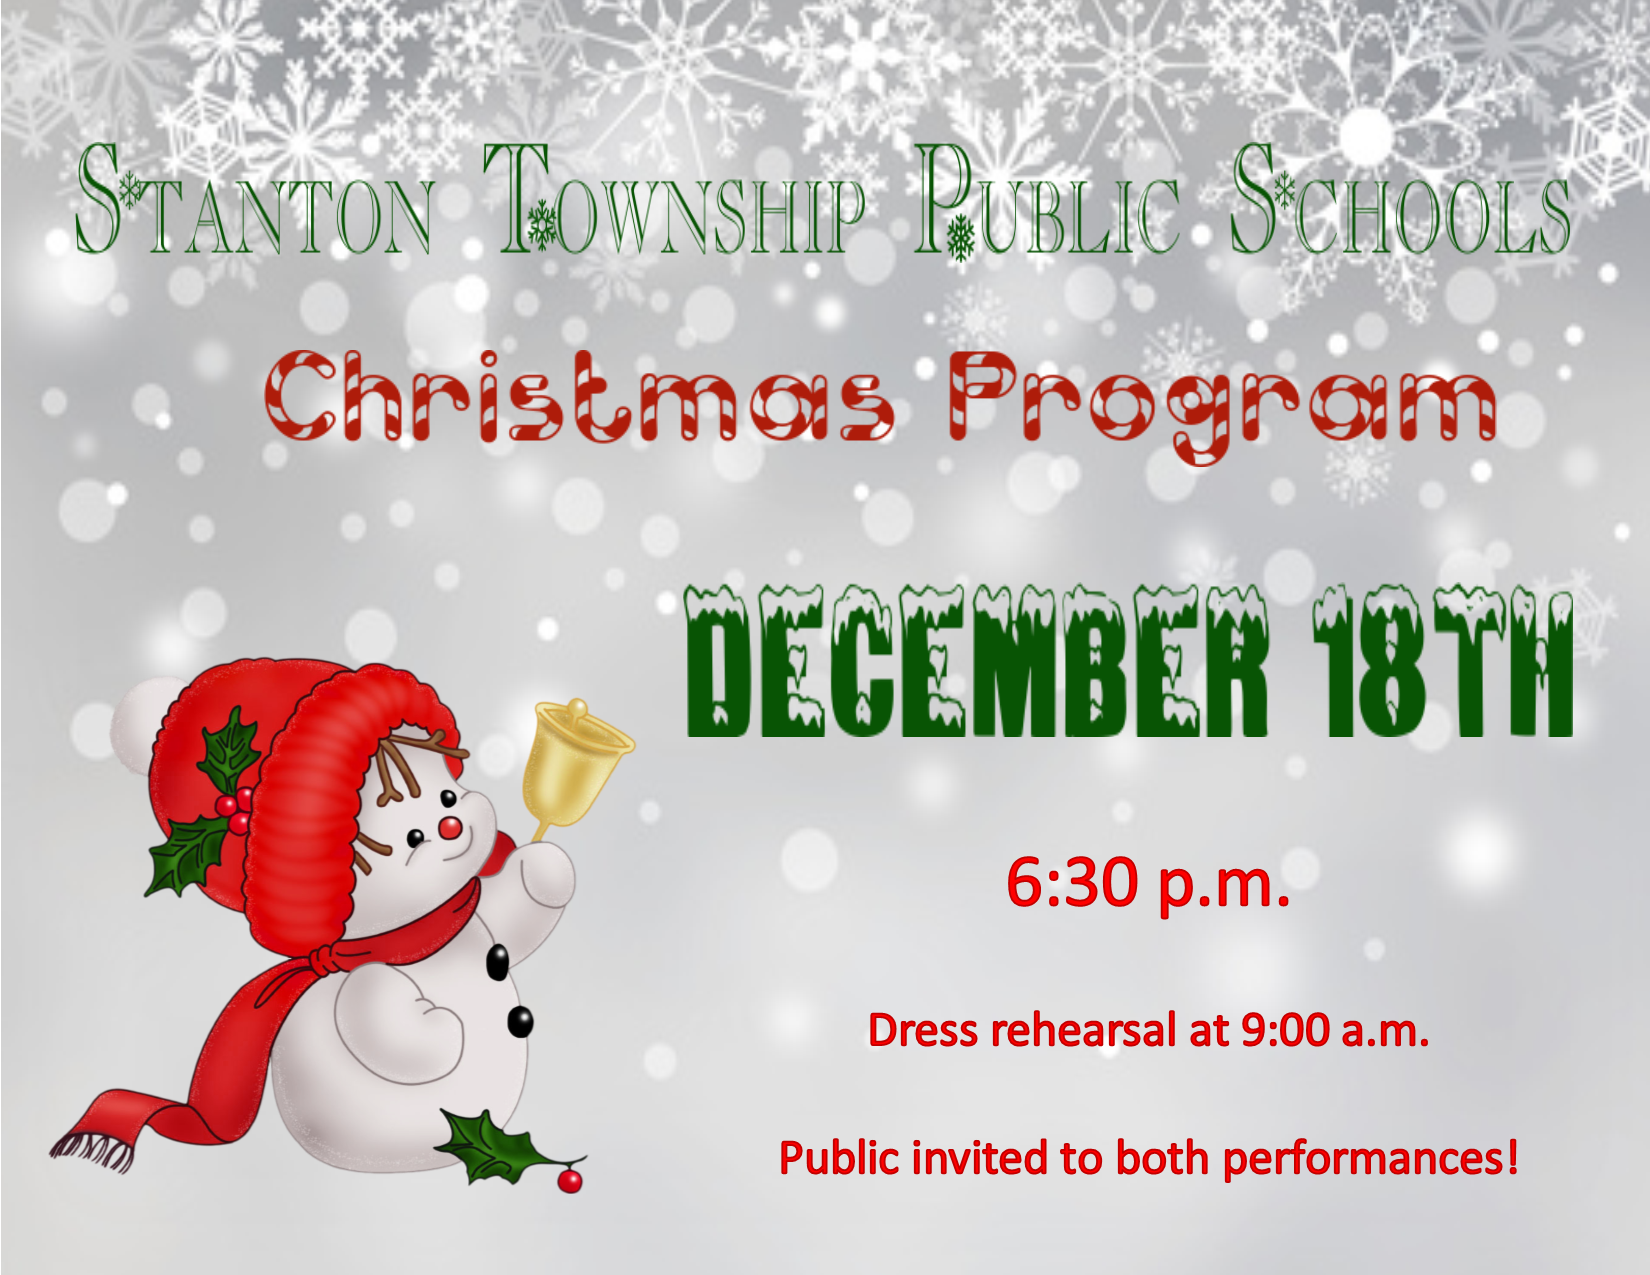 Stanton Township Public Schools Christmas Program December 18th 6:30 p.m. Dress rehearsal at 9:00 a.m. Public invited to both performances!